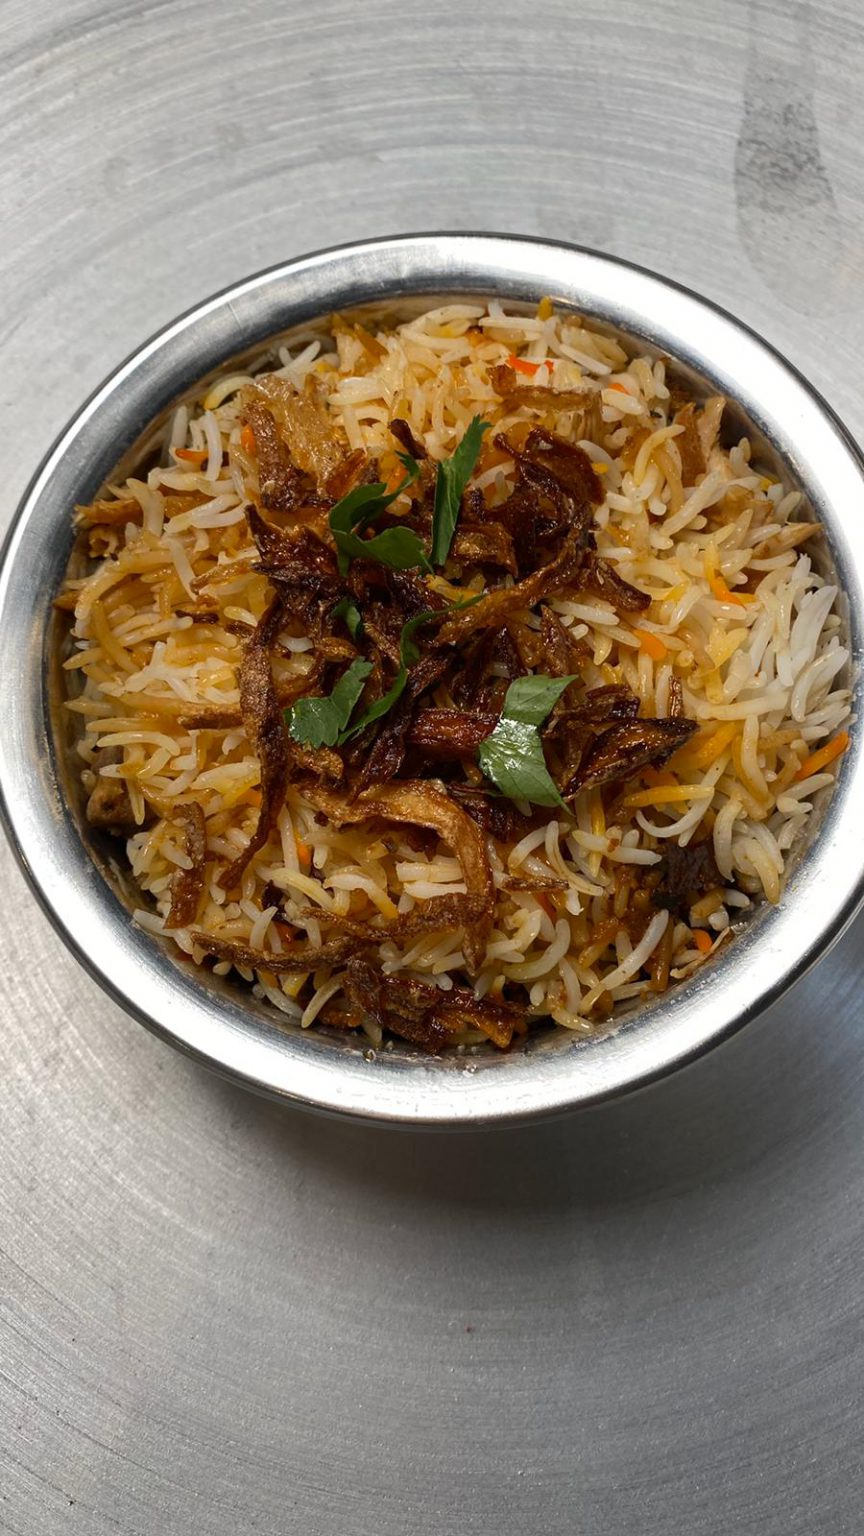 Authentic Dum Biryani In Las Vegas - located on the Las Vegas strip